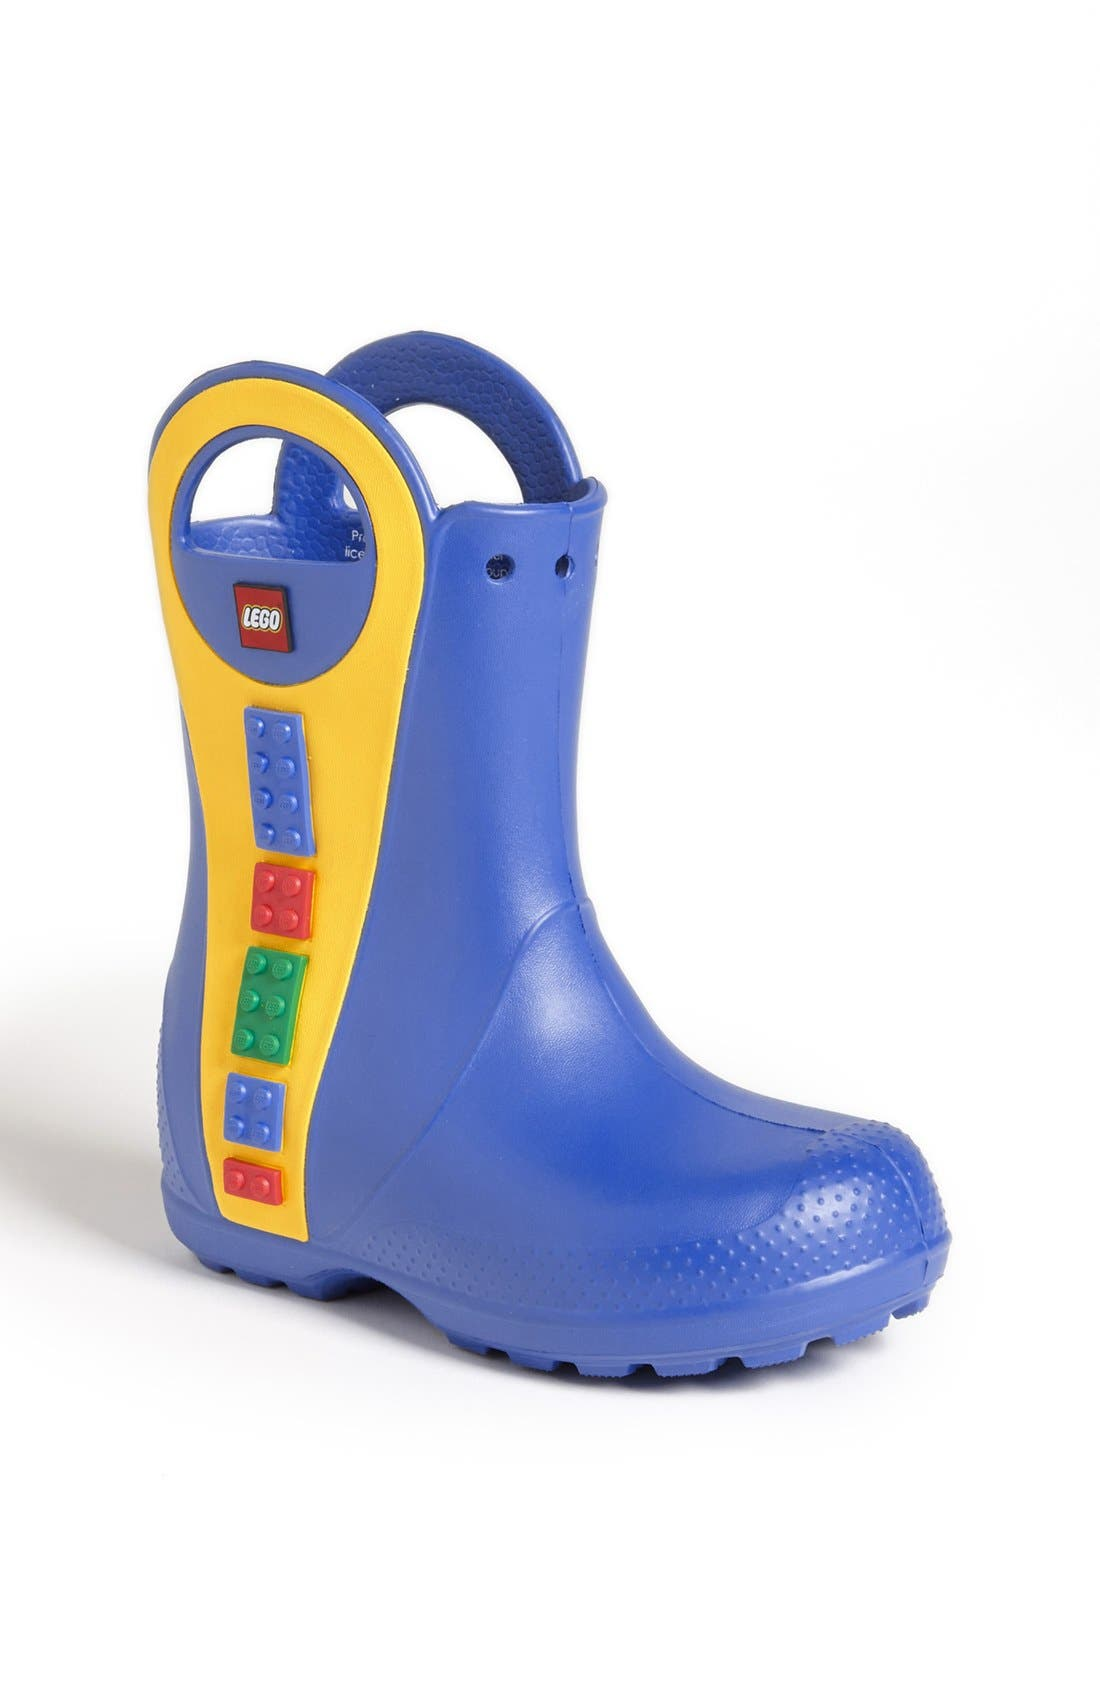 Alternate Image 1 Selected - CROCS™ 'Handle It - LEGO®' Rain Boot (Walker, Toddler & Little Kid)